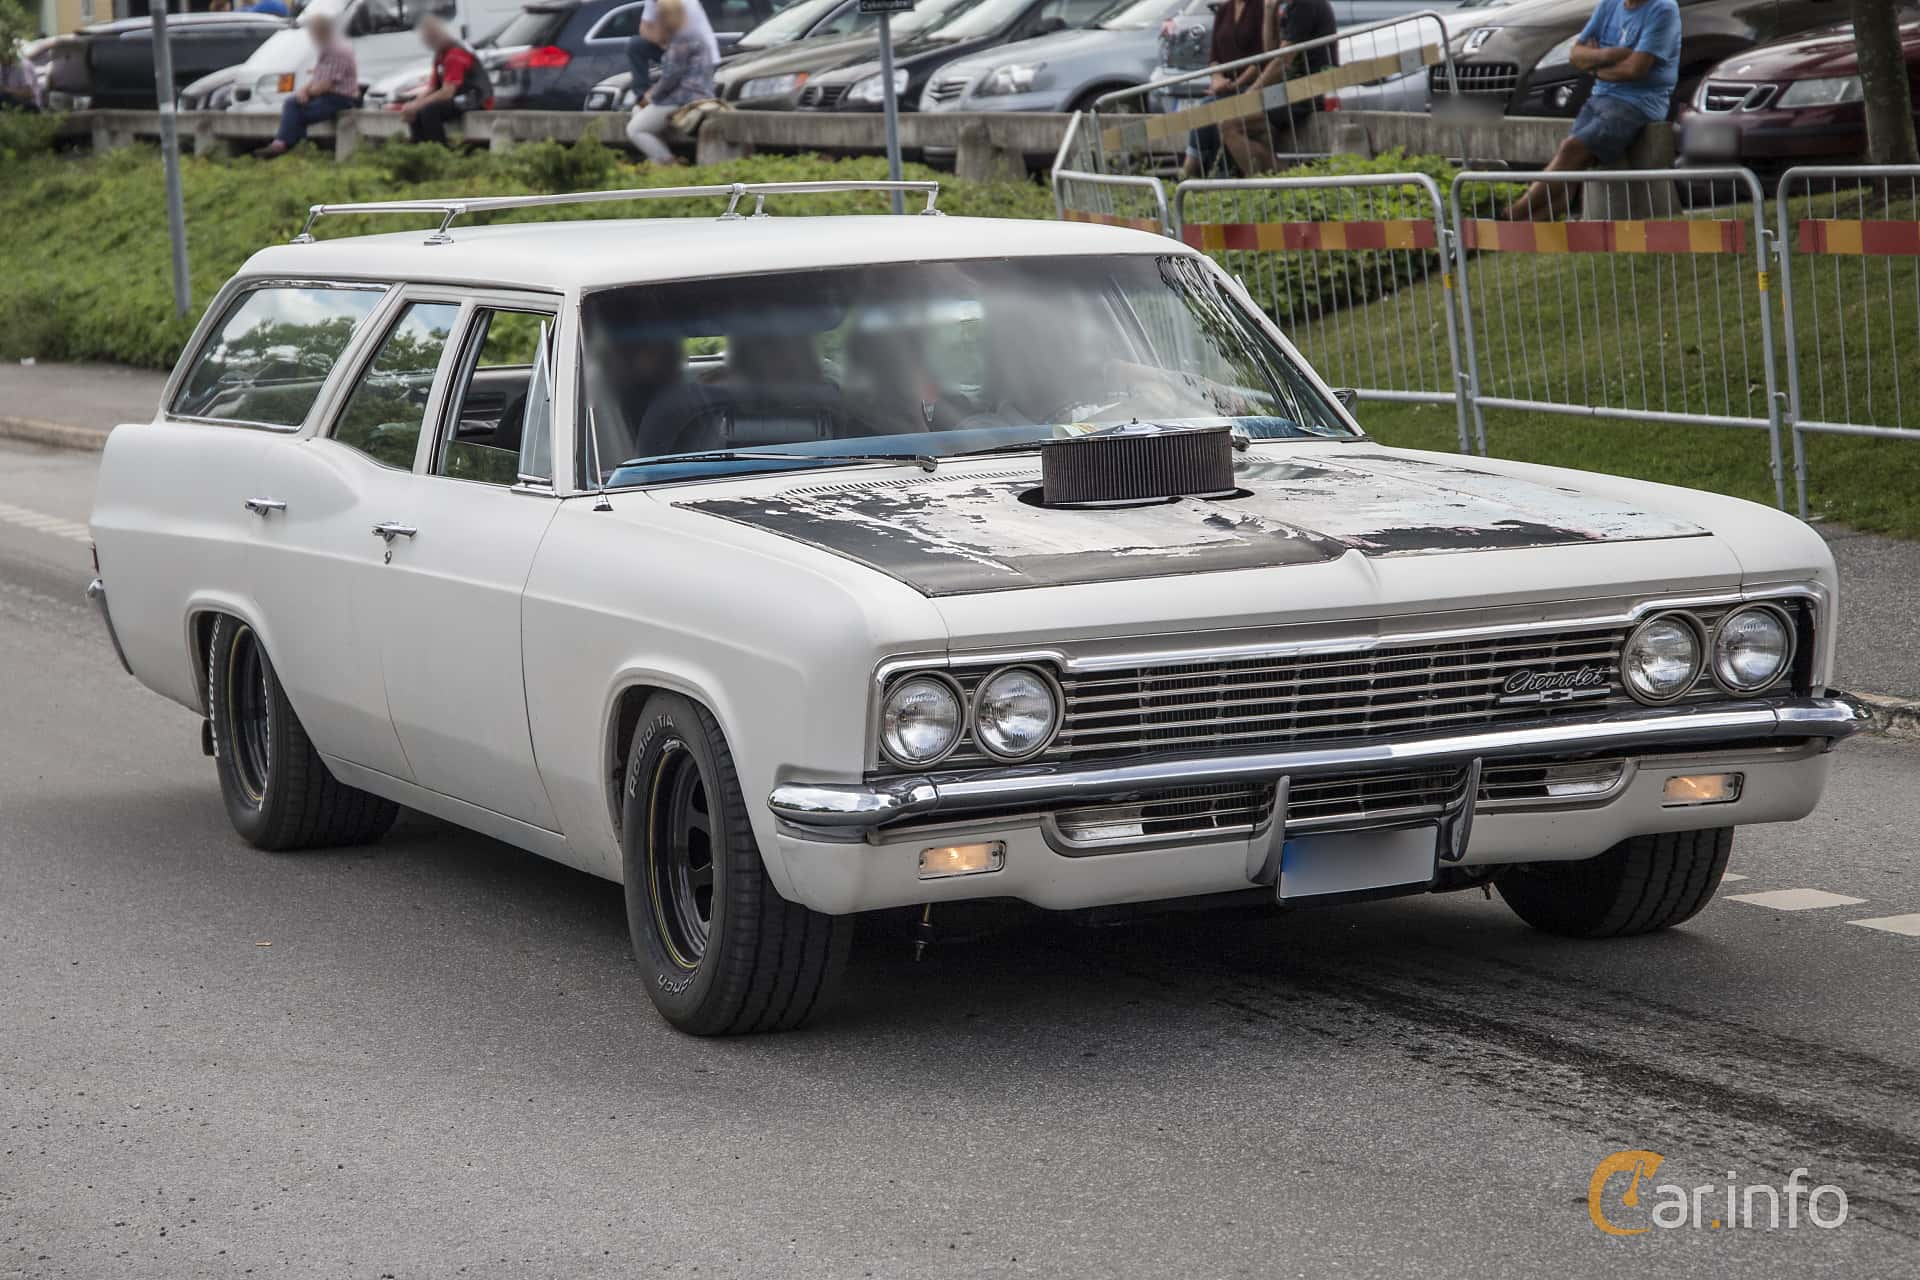 Chevrolet Caprice 3 Seat Station Wagon 1966 Chevy For Sale